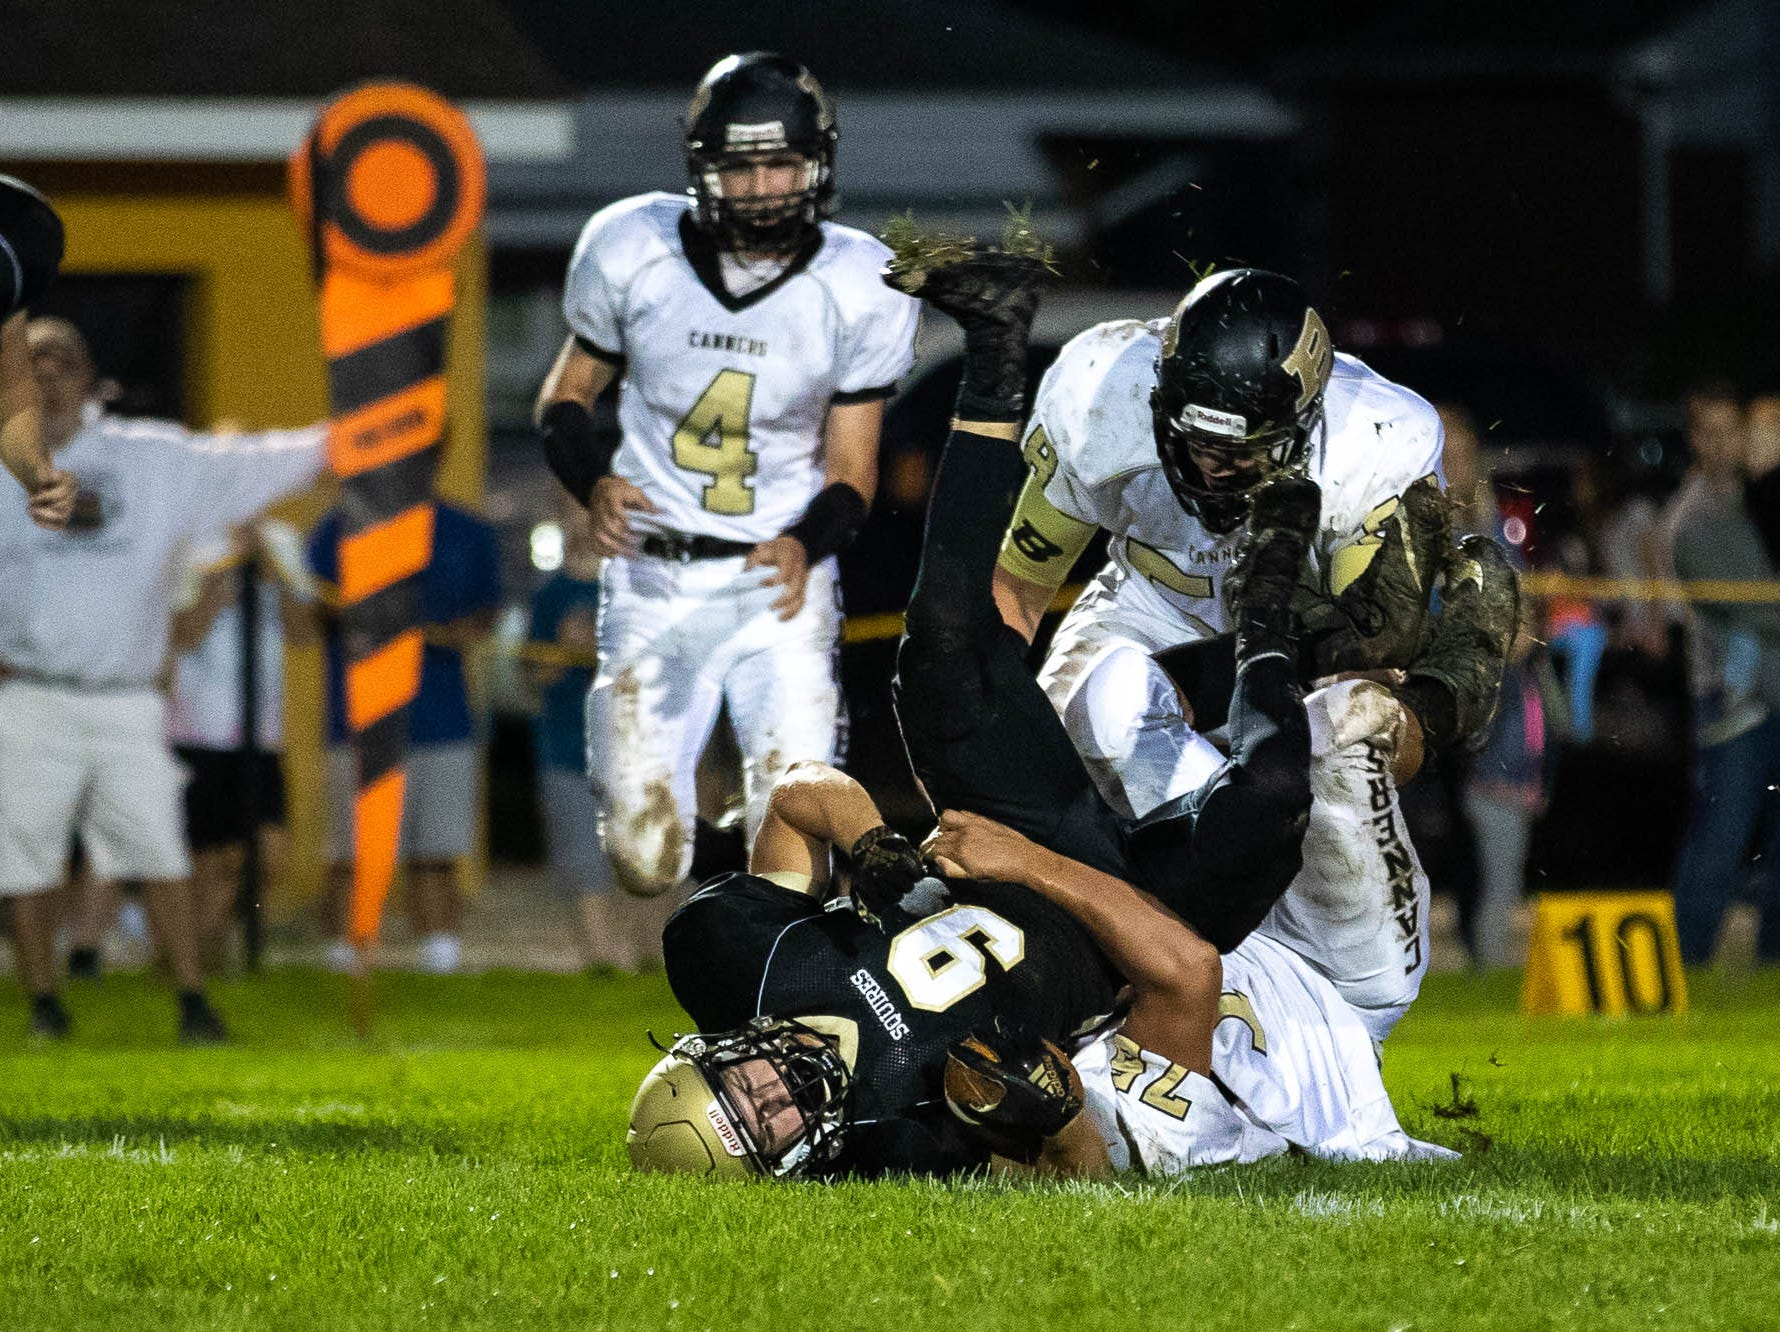 Delone's Logan Brown (9) is flipped upsidedown while tackled by Biglerville's Derek Tosten (15) during the first half of a football game between Delone Catholic and Biglerville, Friday, Sept. 28, 2018, in McSherrystown. Delone led Biglerville 35-0 at the half.